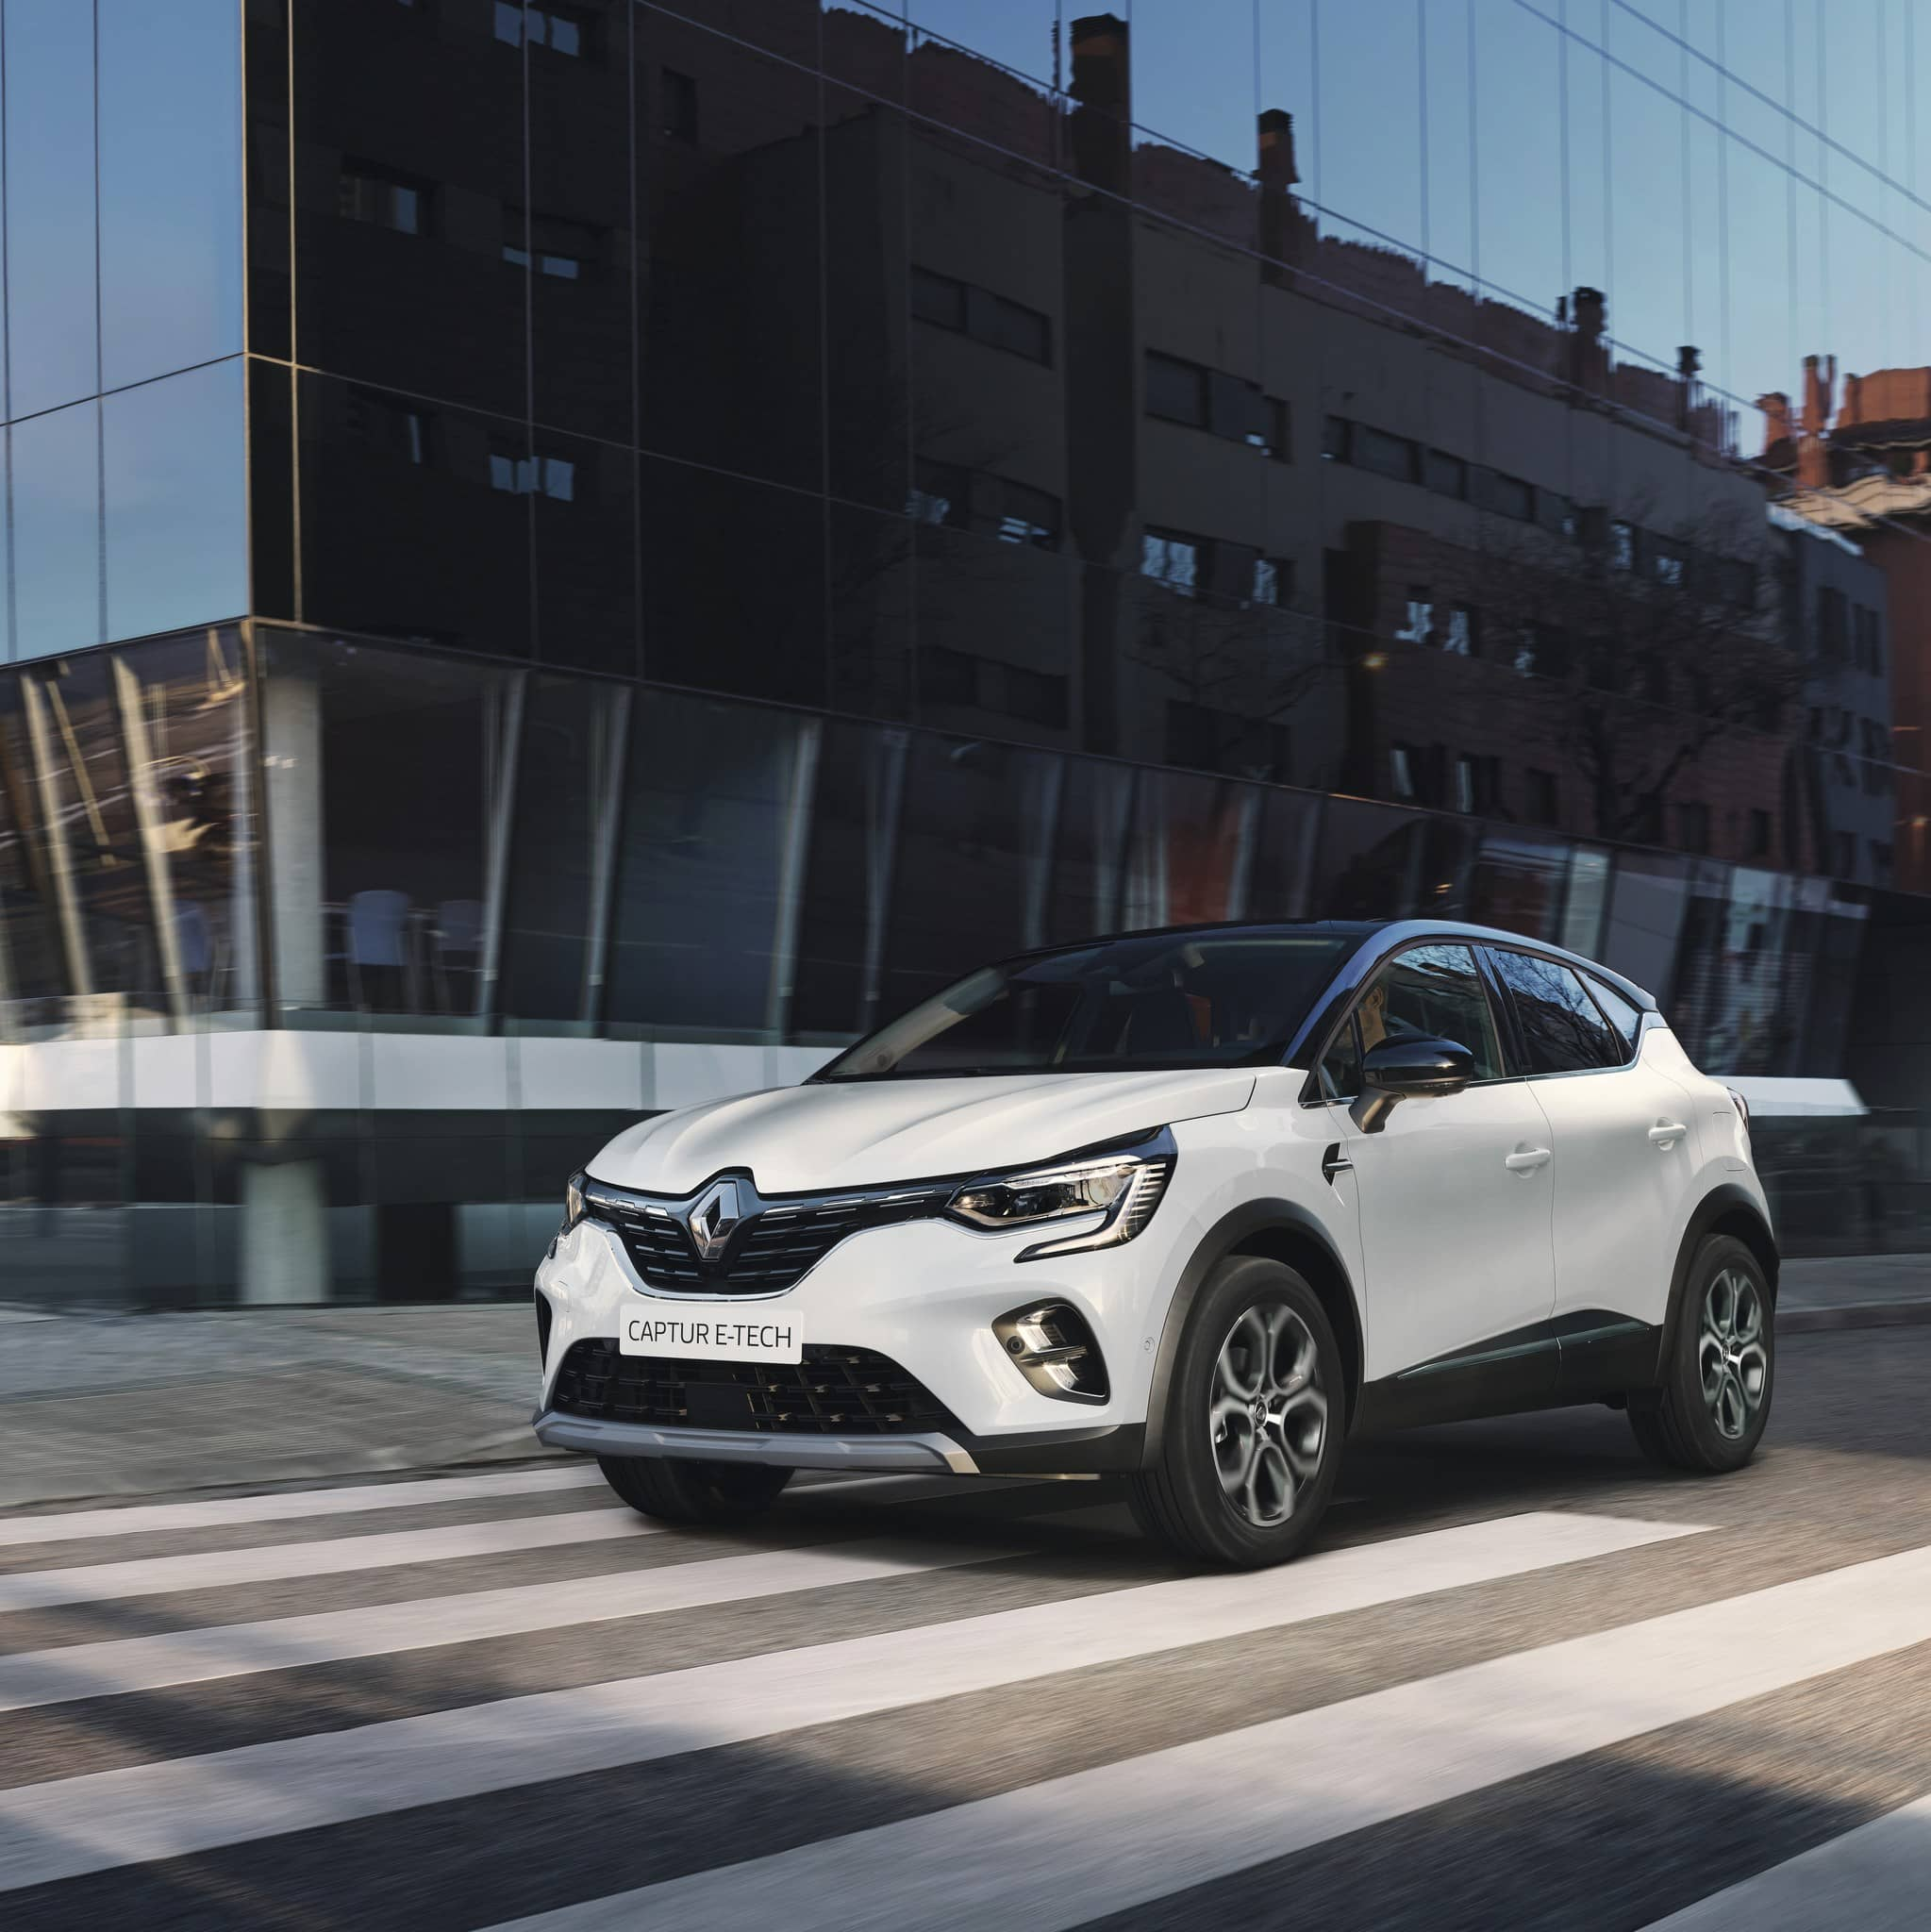 mini-2020 – New Renault CAPTUR E-TECH Plug-in (3)